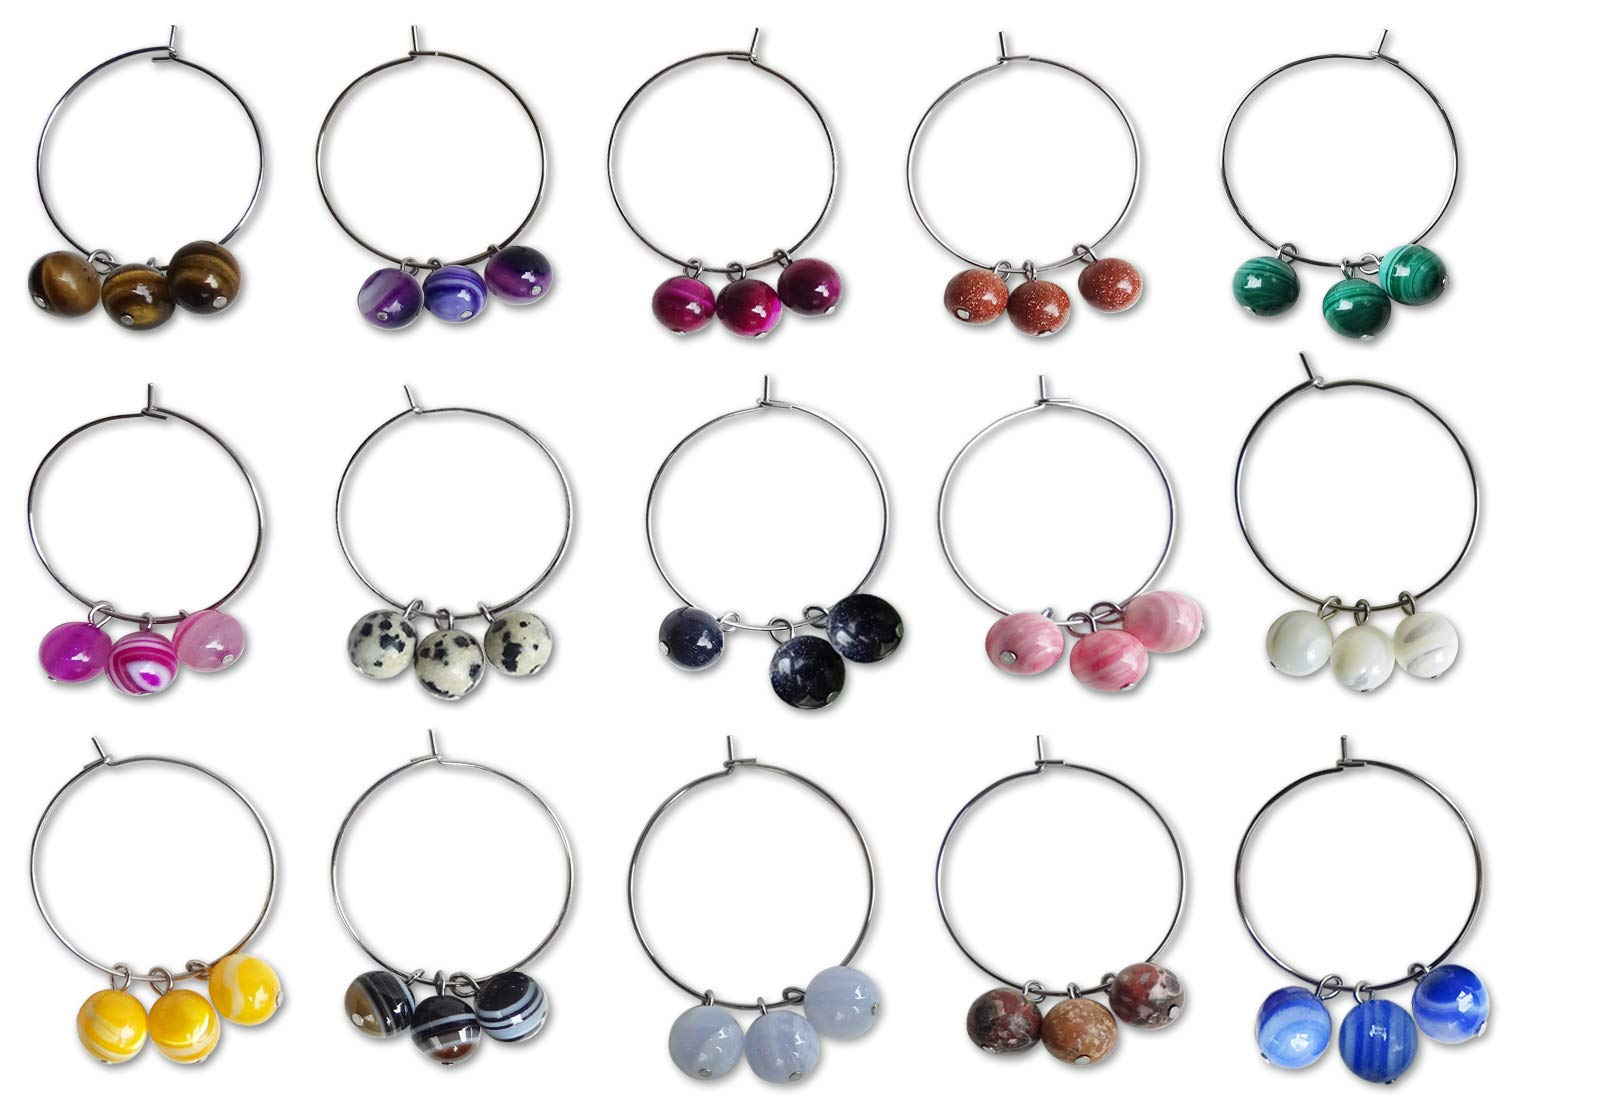 Wine Glass Charms -Set of 8, 10, 12 (Assorted colors) by Analys CC